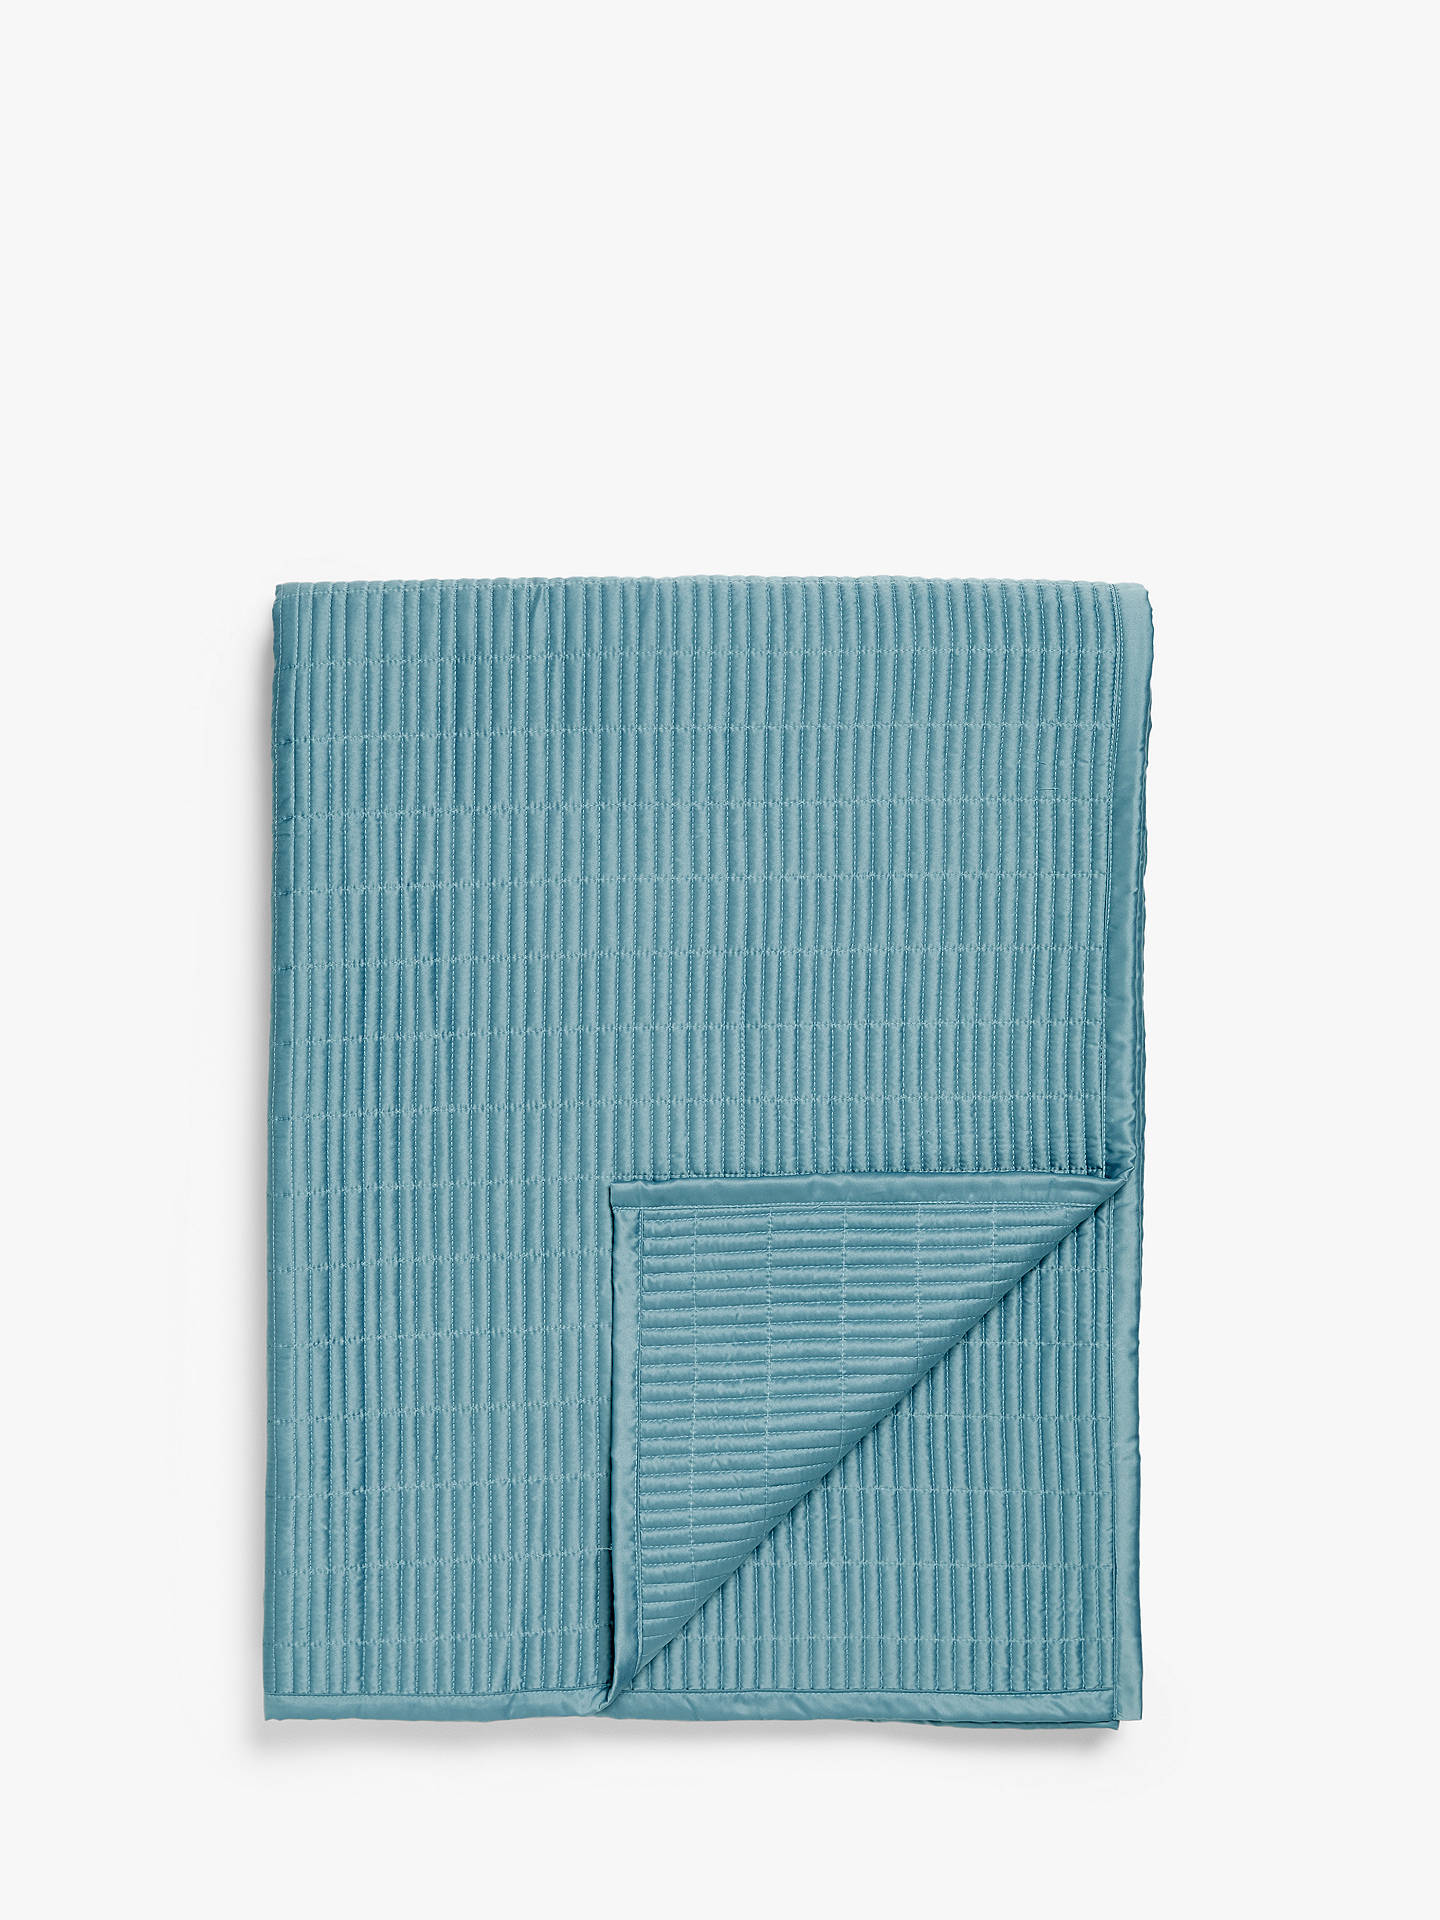 Buy John Lewis & Partners Moda Bedspread, Soft Teal Online at johnlewis.com